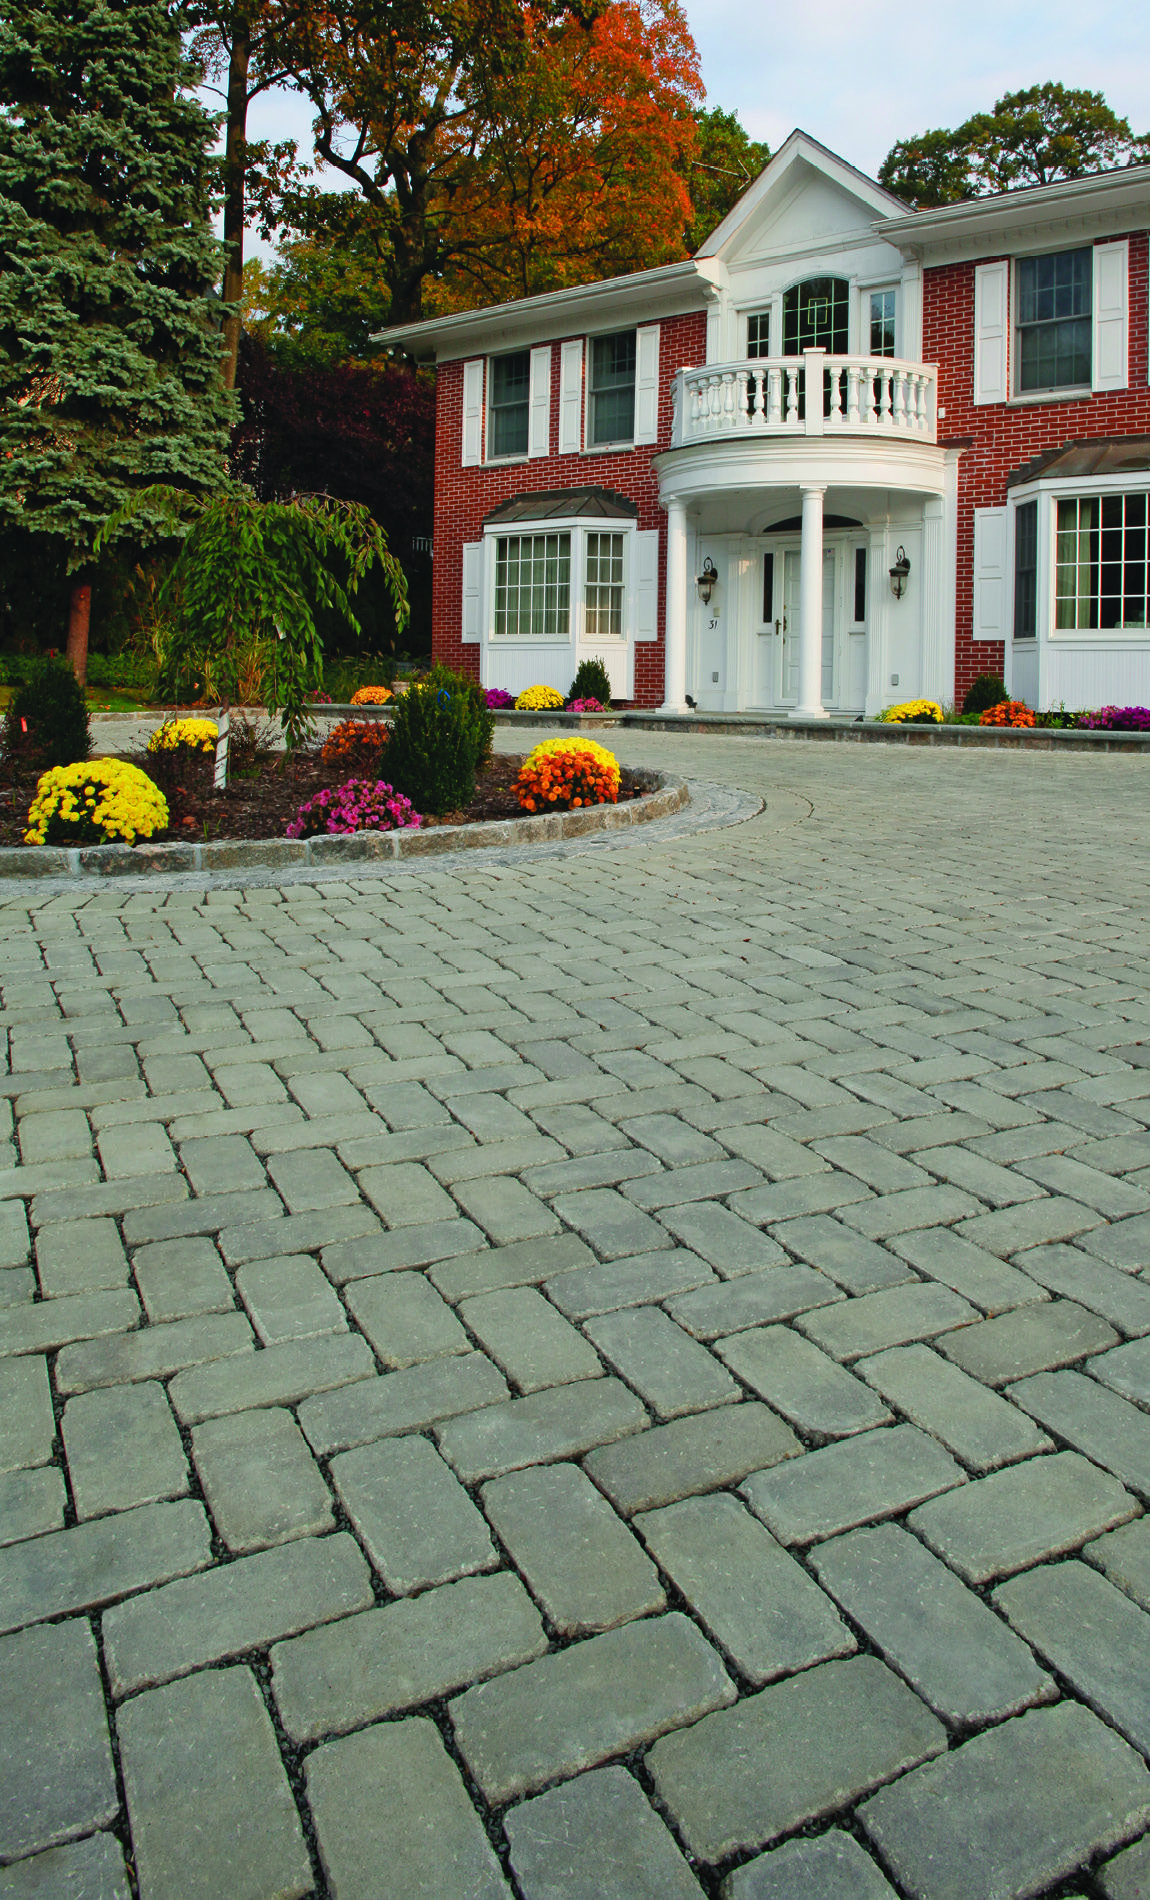 Cambridge pavingstones wall systems color options - Permeable Pavers By Cambridge Pavingstones With Armortec Are A Stormwater Management System Designed To Trap Pollutants